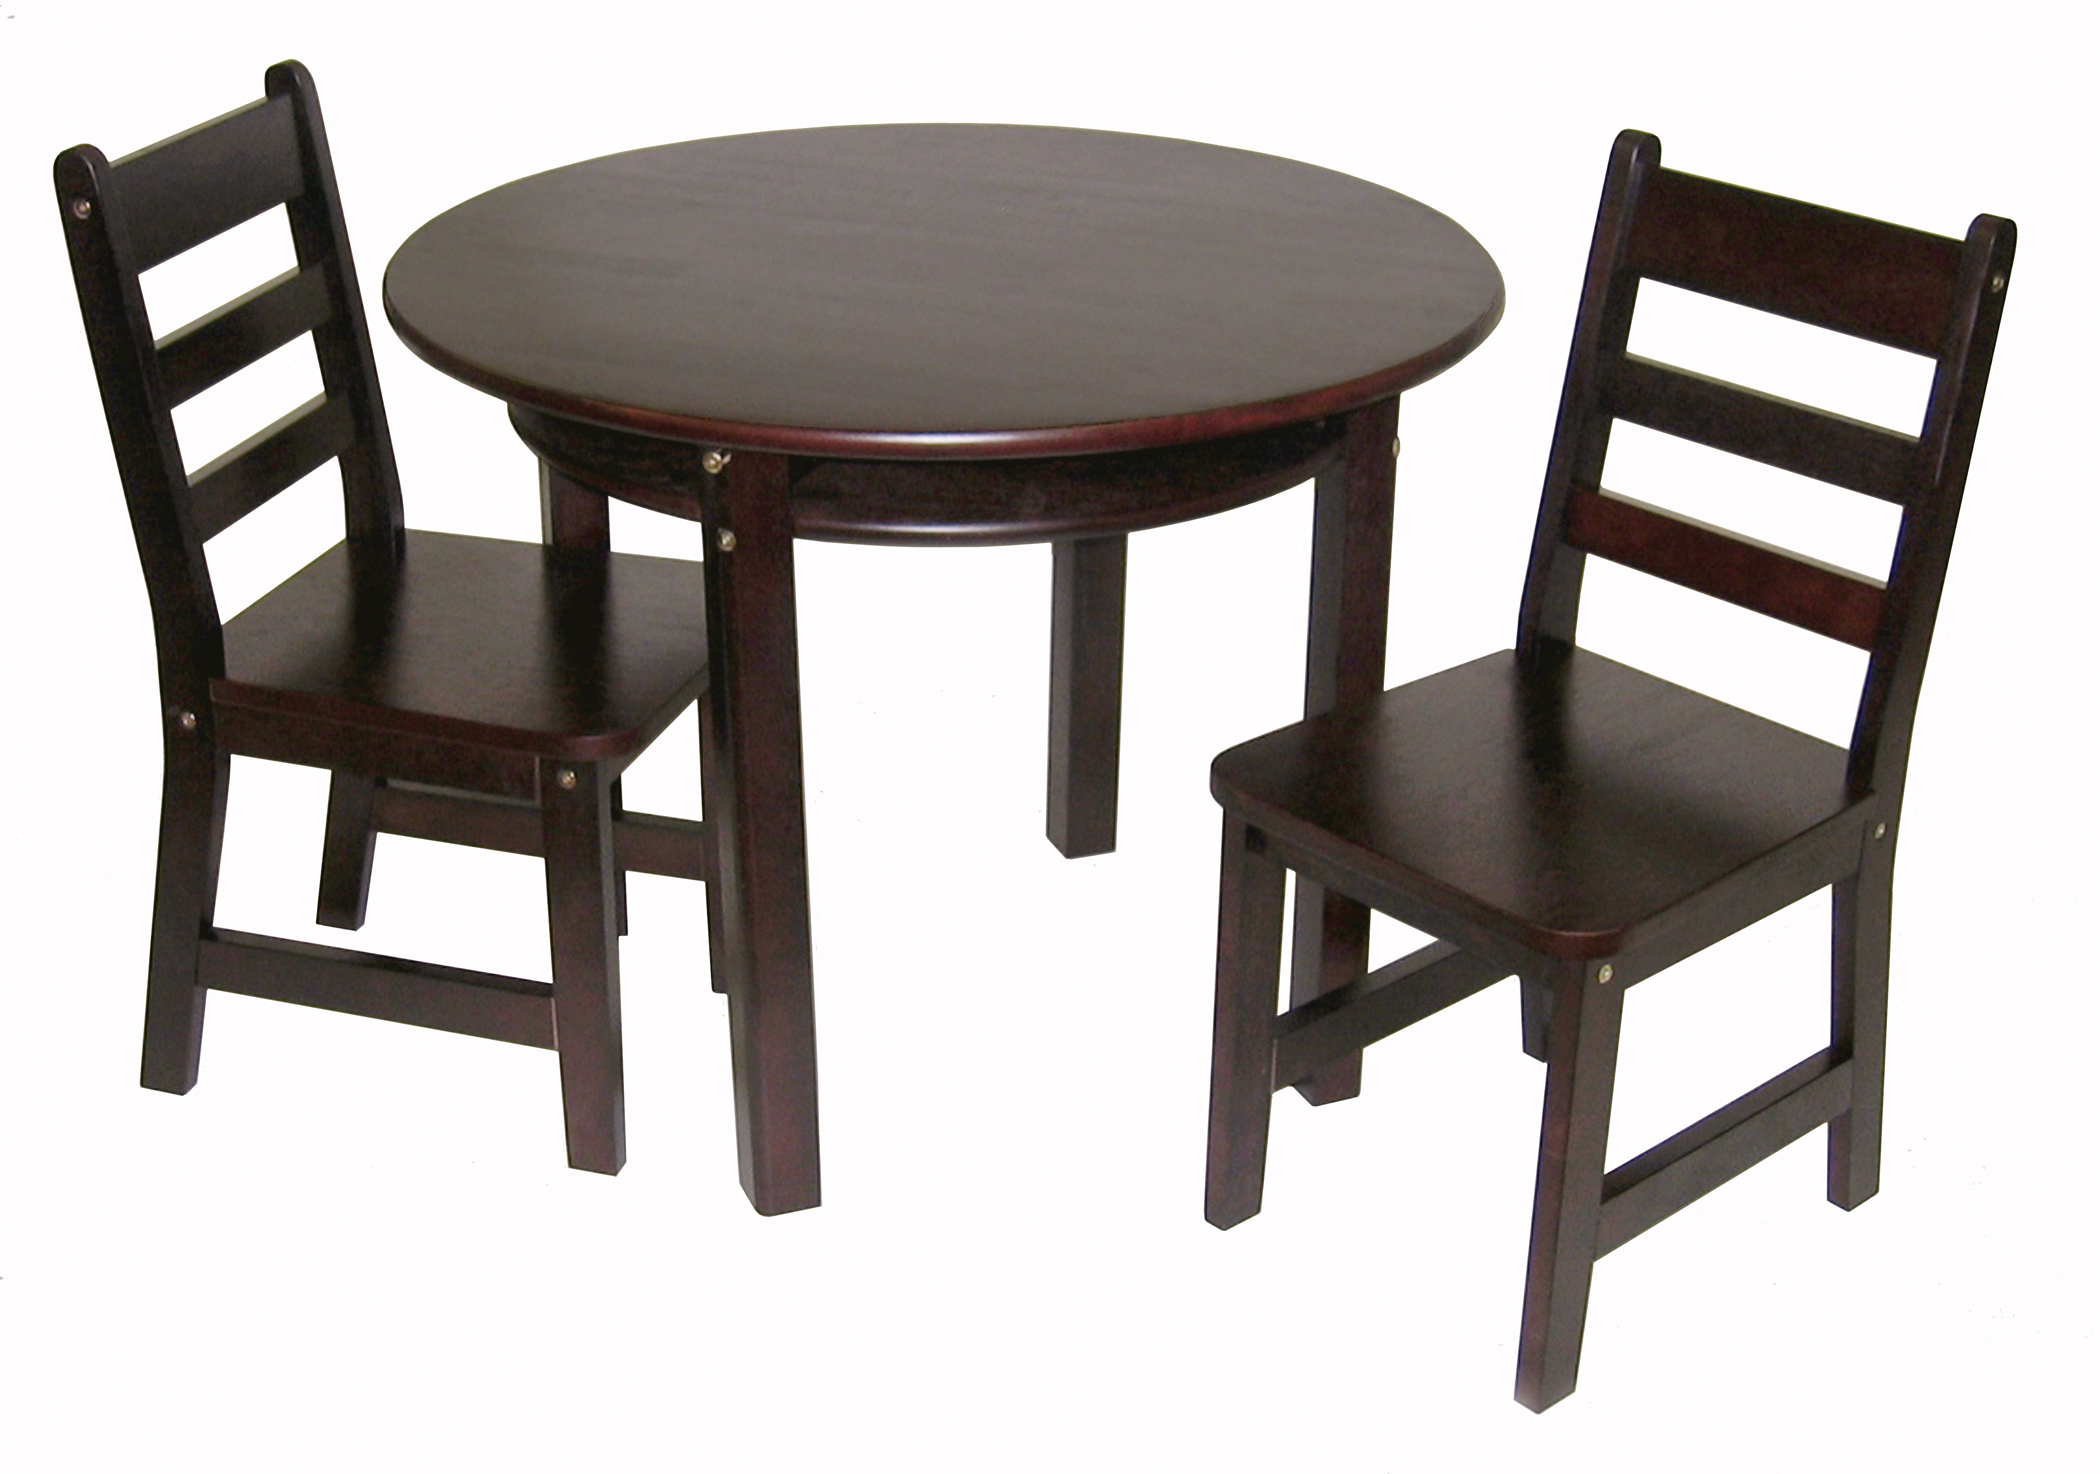 round table and chairs set eames dining chair canada sets for children kids collection lipper international child s with shelf 2 espresso finish